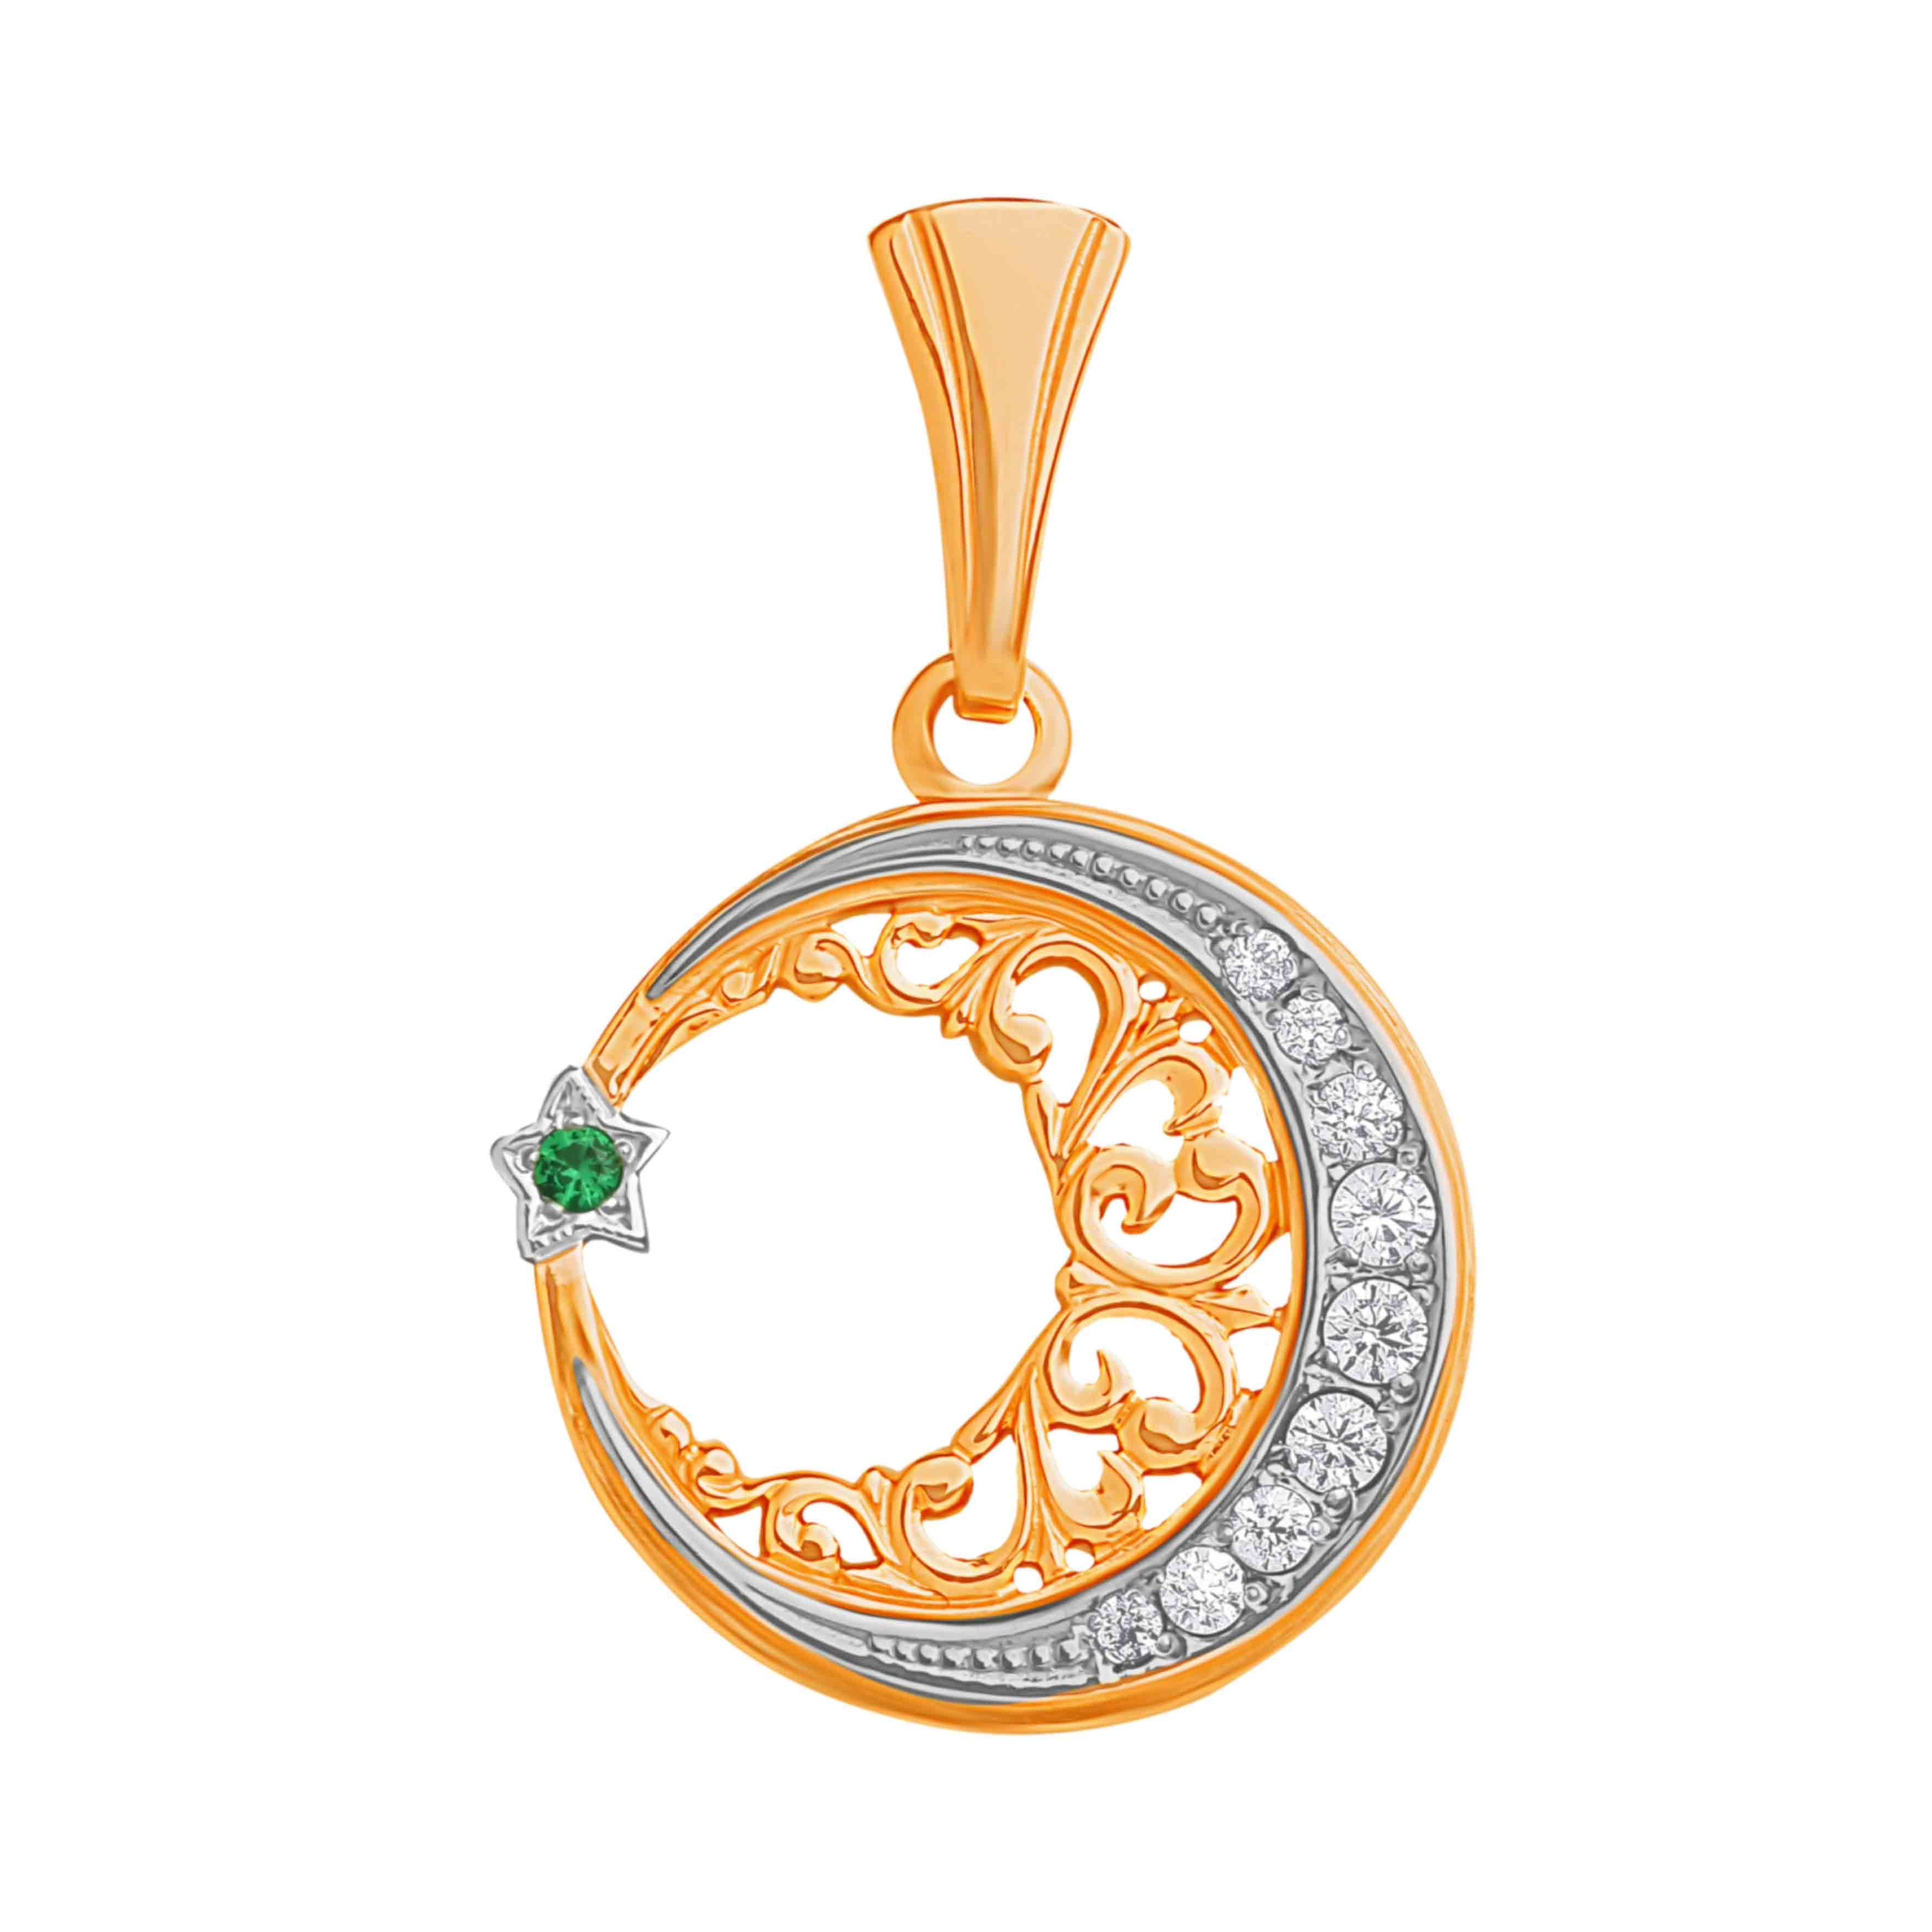 Star and Crescent Filigree Gold Pendant